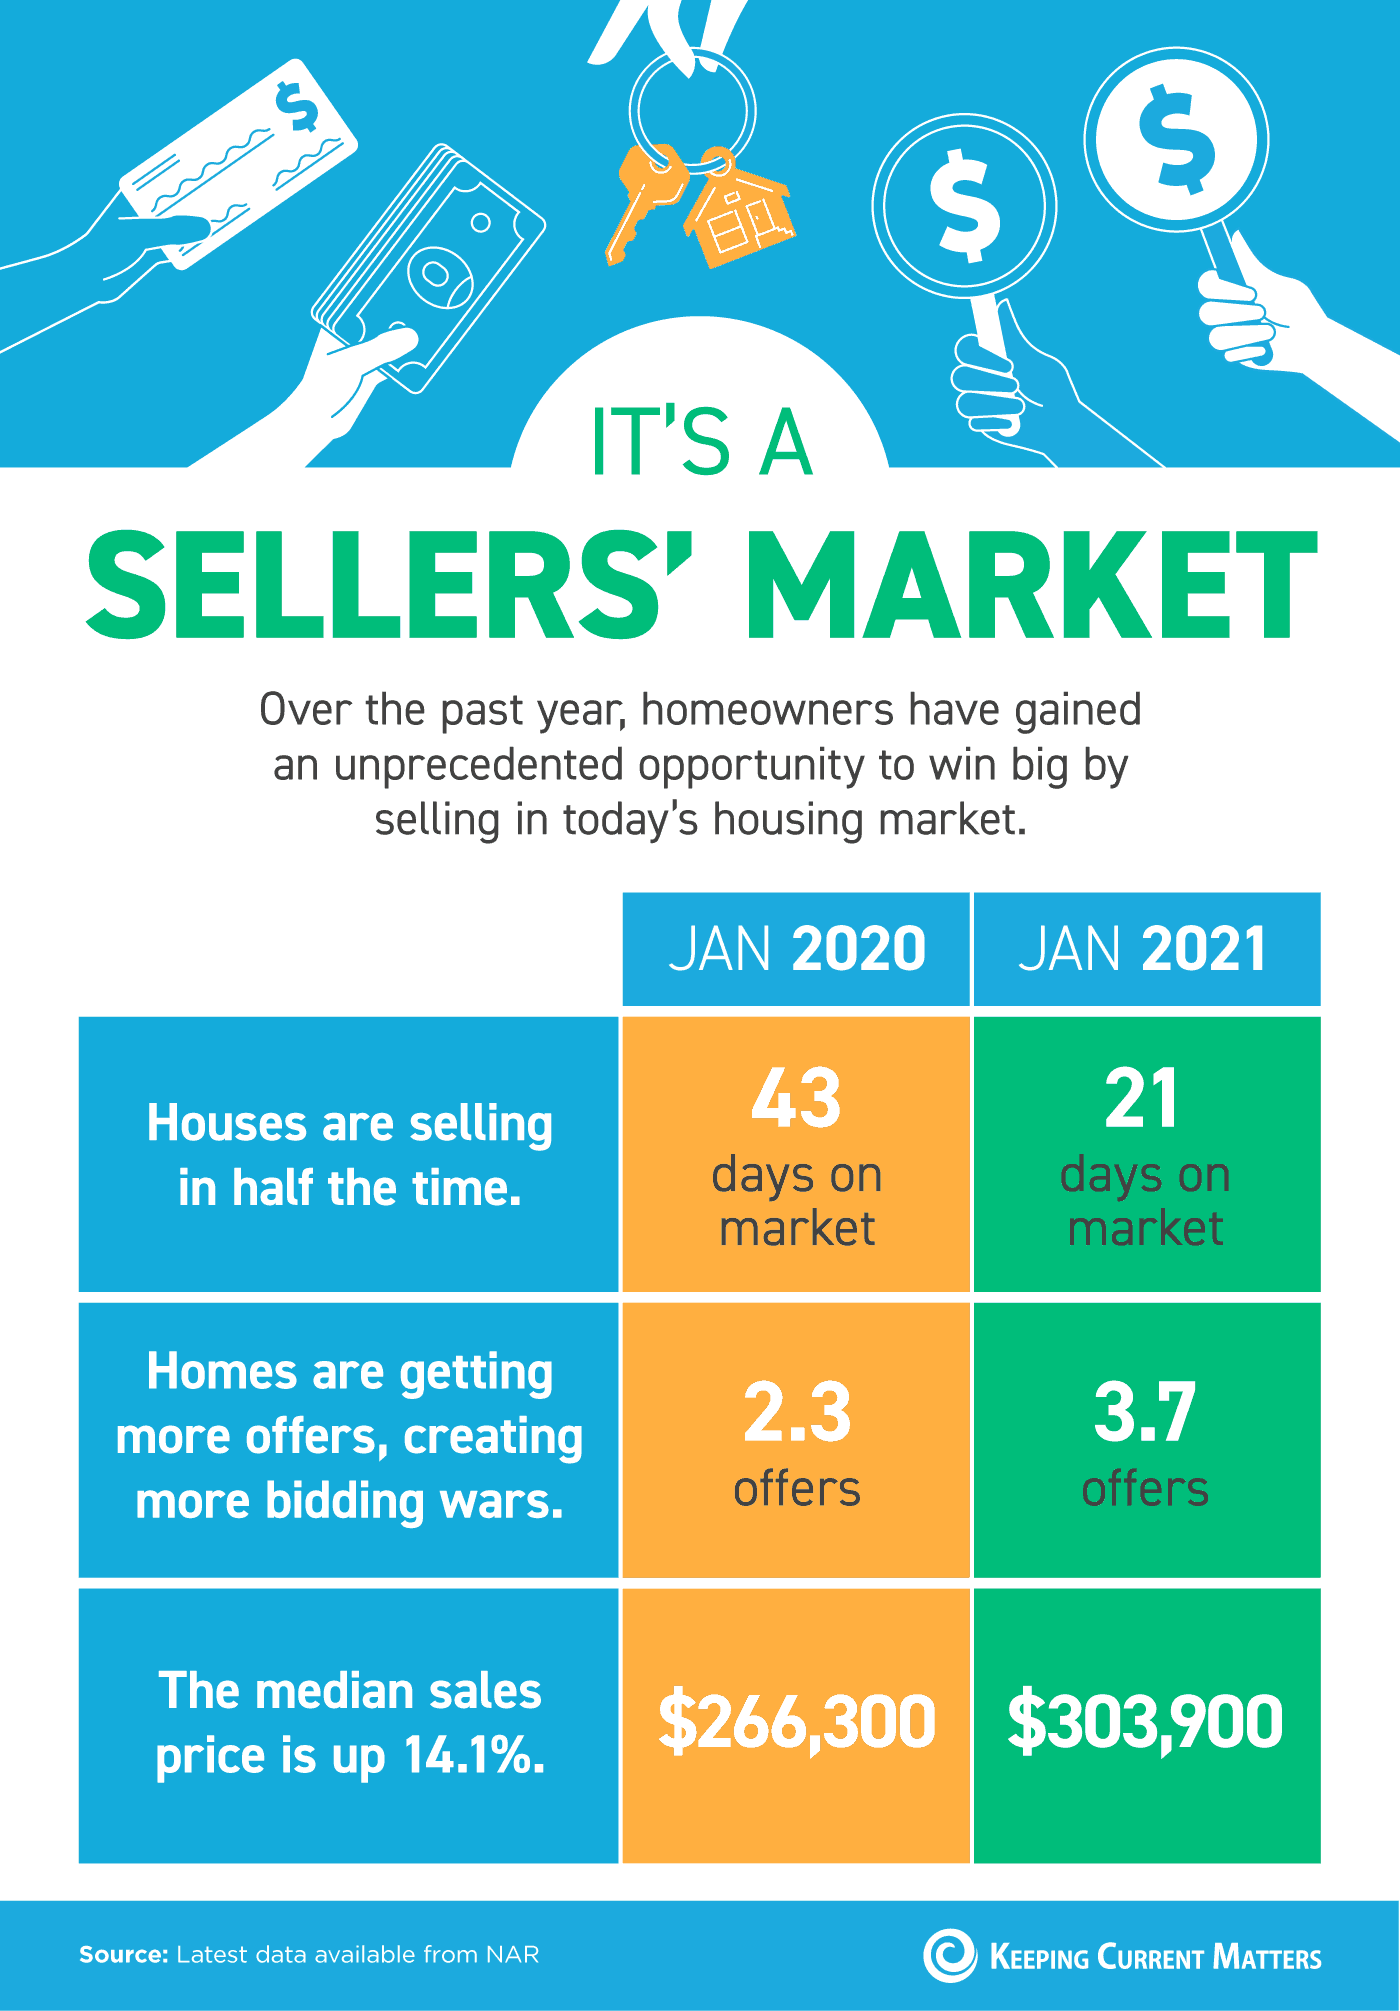 It's a Sellers' Market [INFOGRAPHIC] | Keeping Current Matters